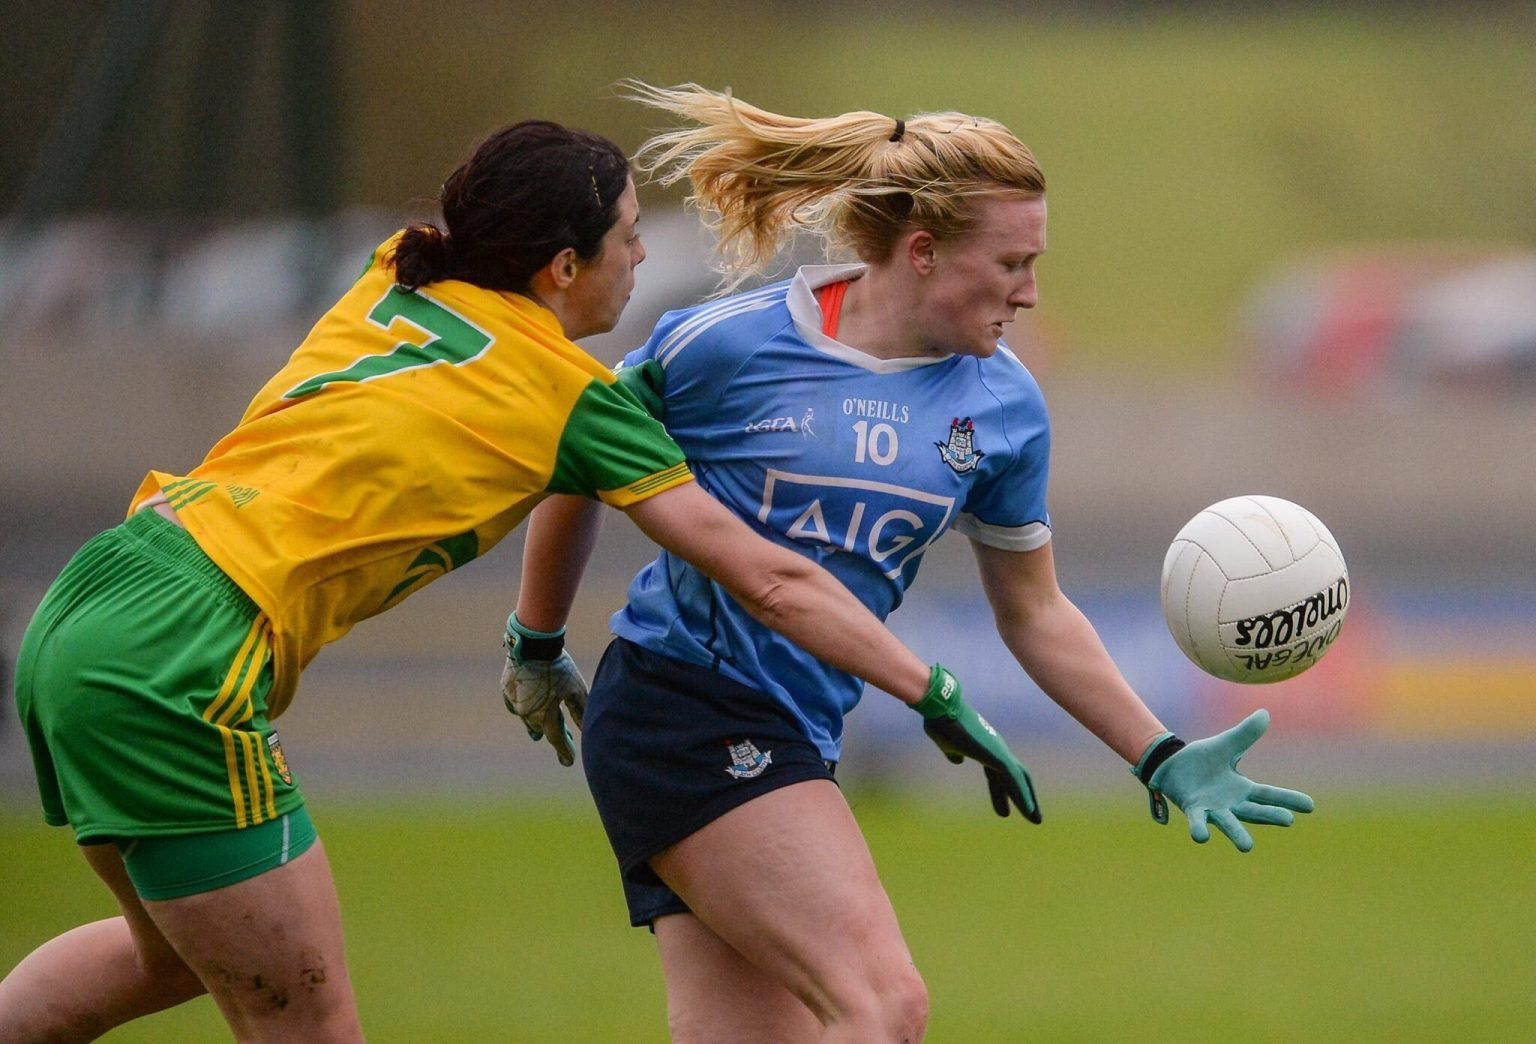 A Donegal Ladies footballer in a yellow jersey with green sleeves tackles a Dublin player in a sky blue jersey during the Lidl Ladies National Football League